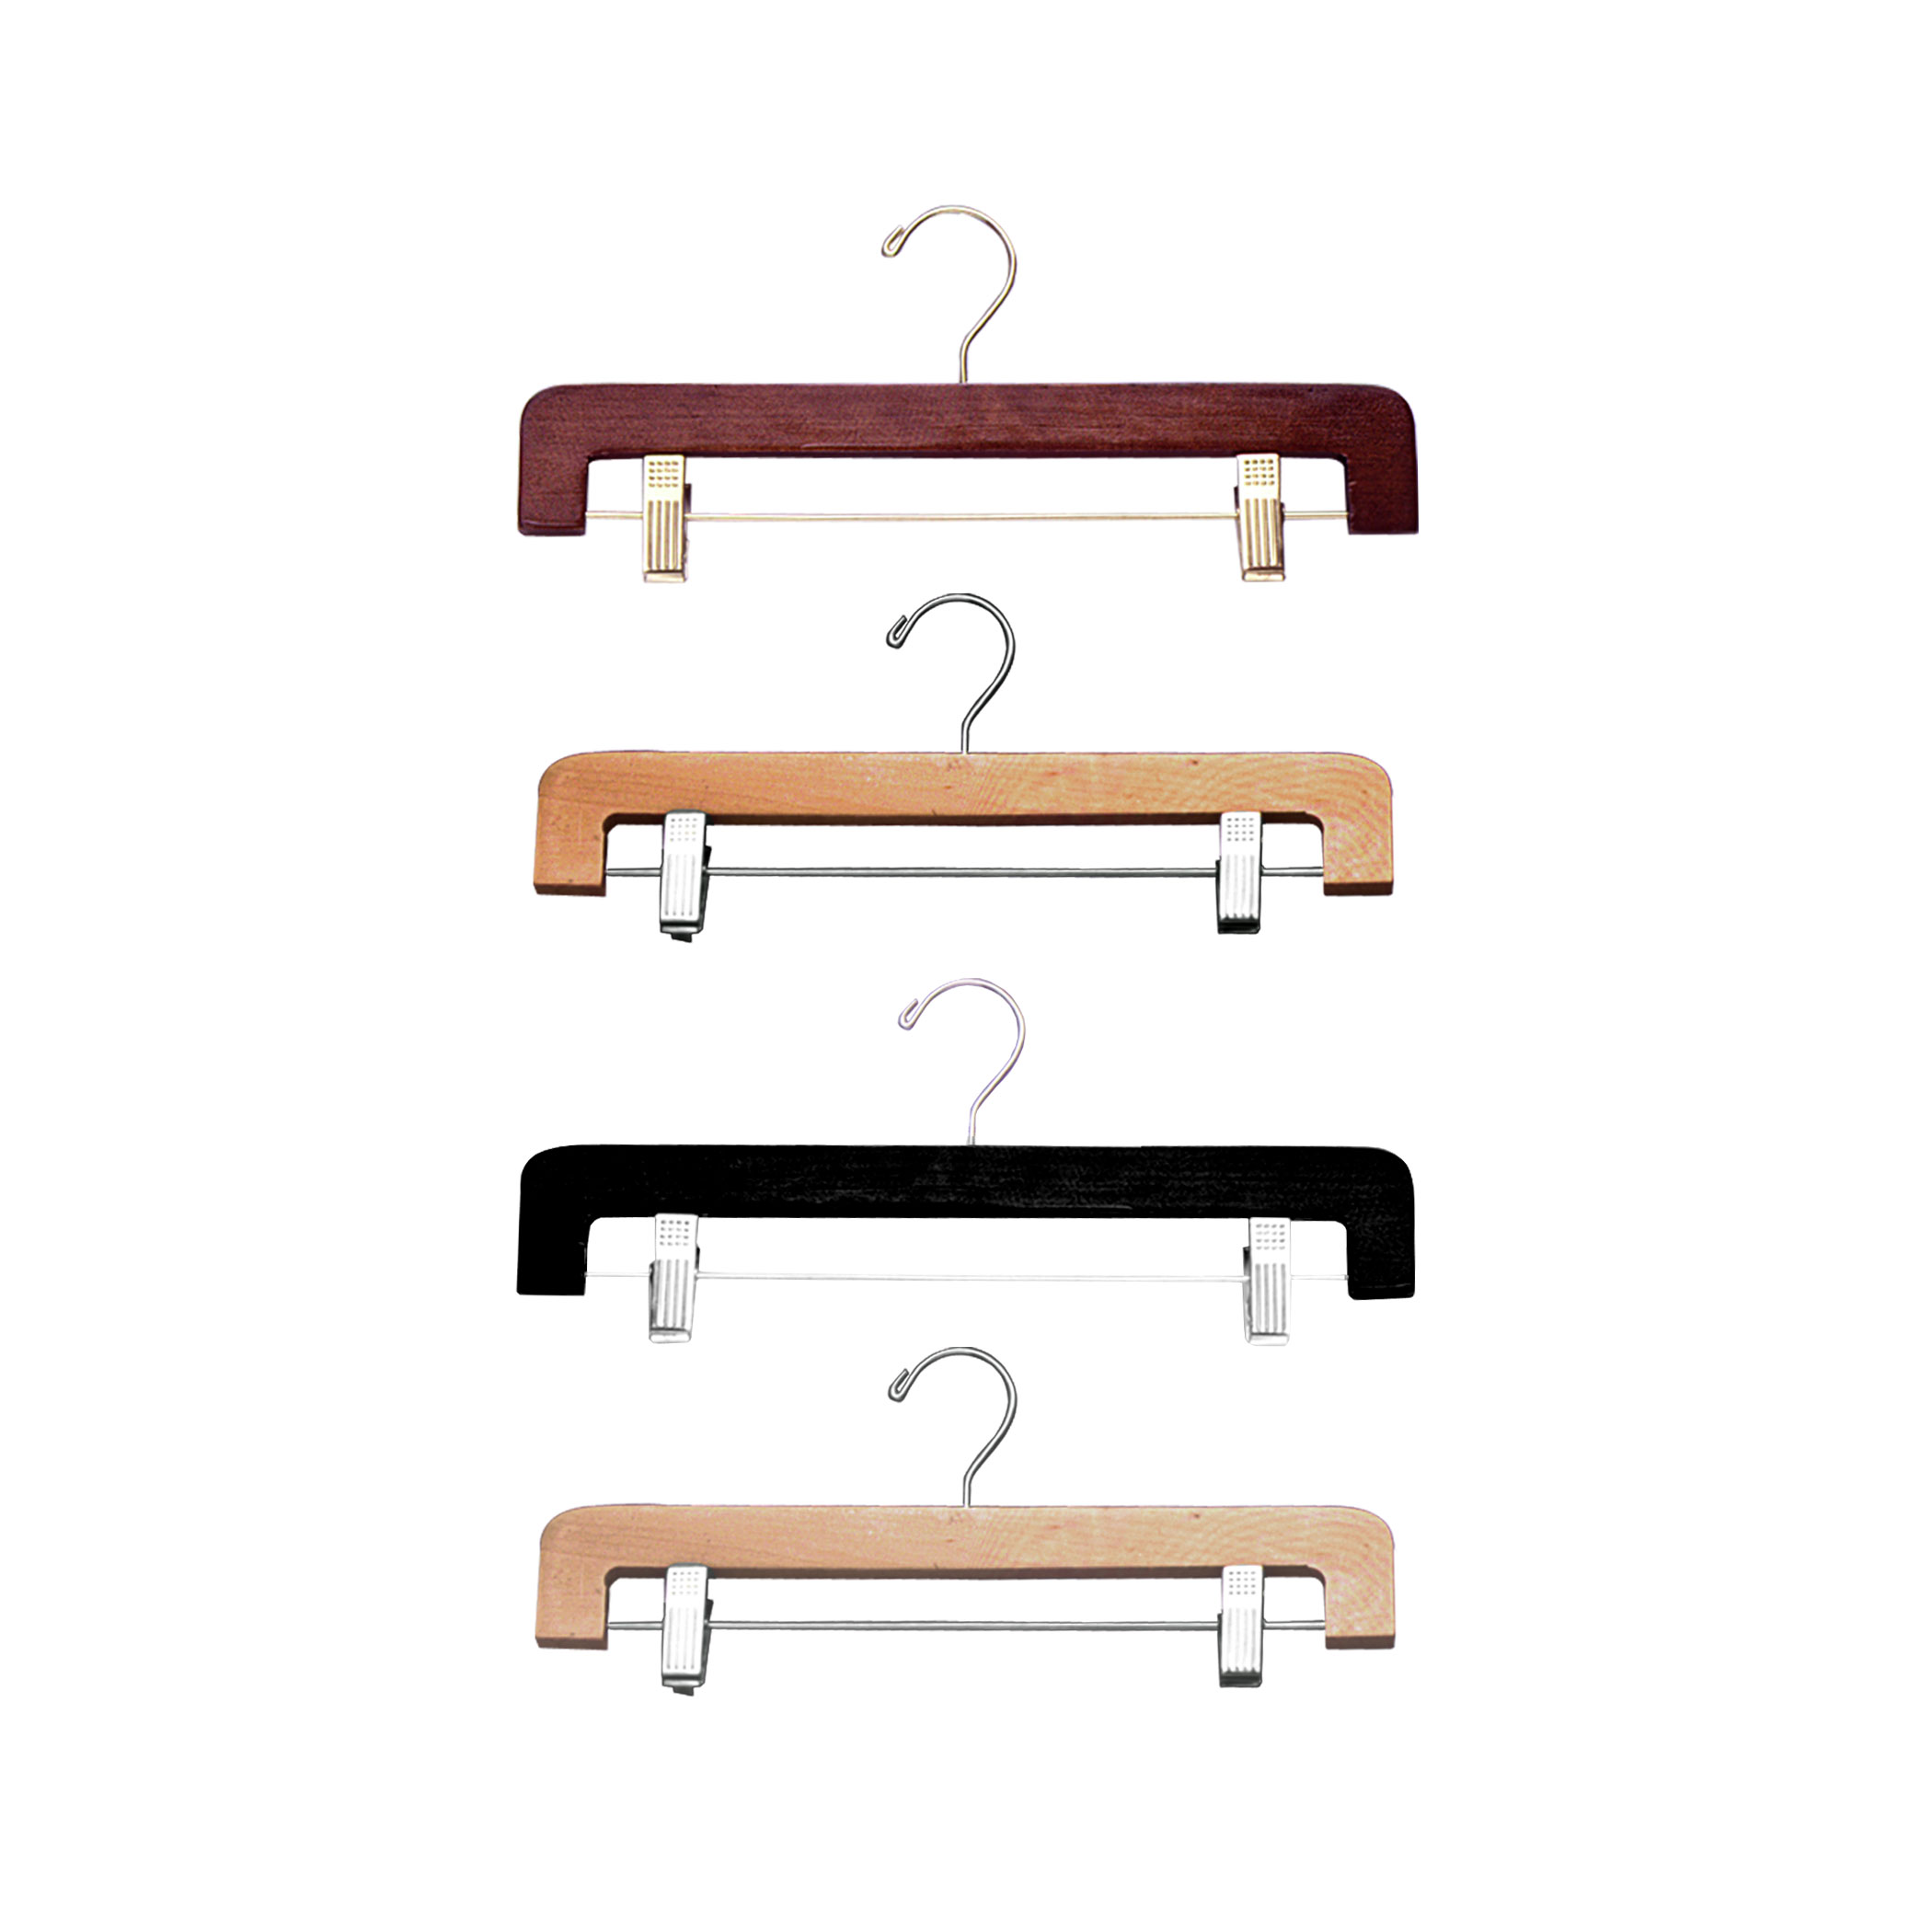 14″ Wood Pant & Skirt Hanger -H400 Series